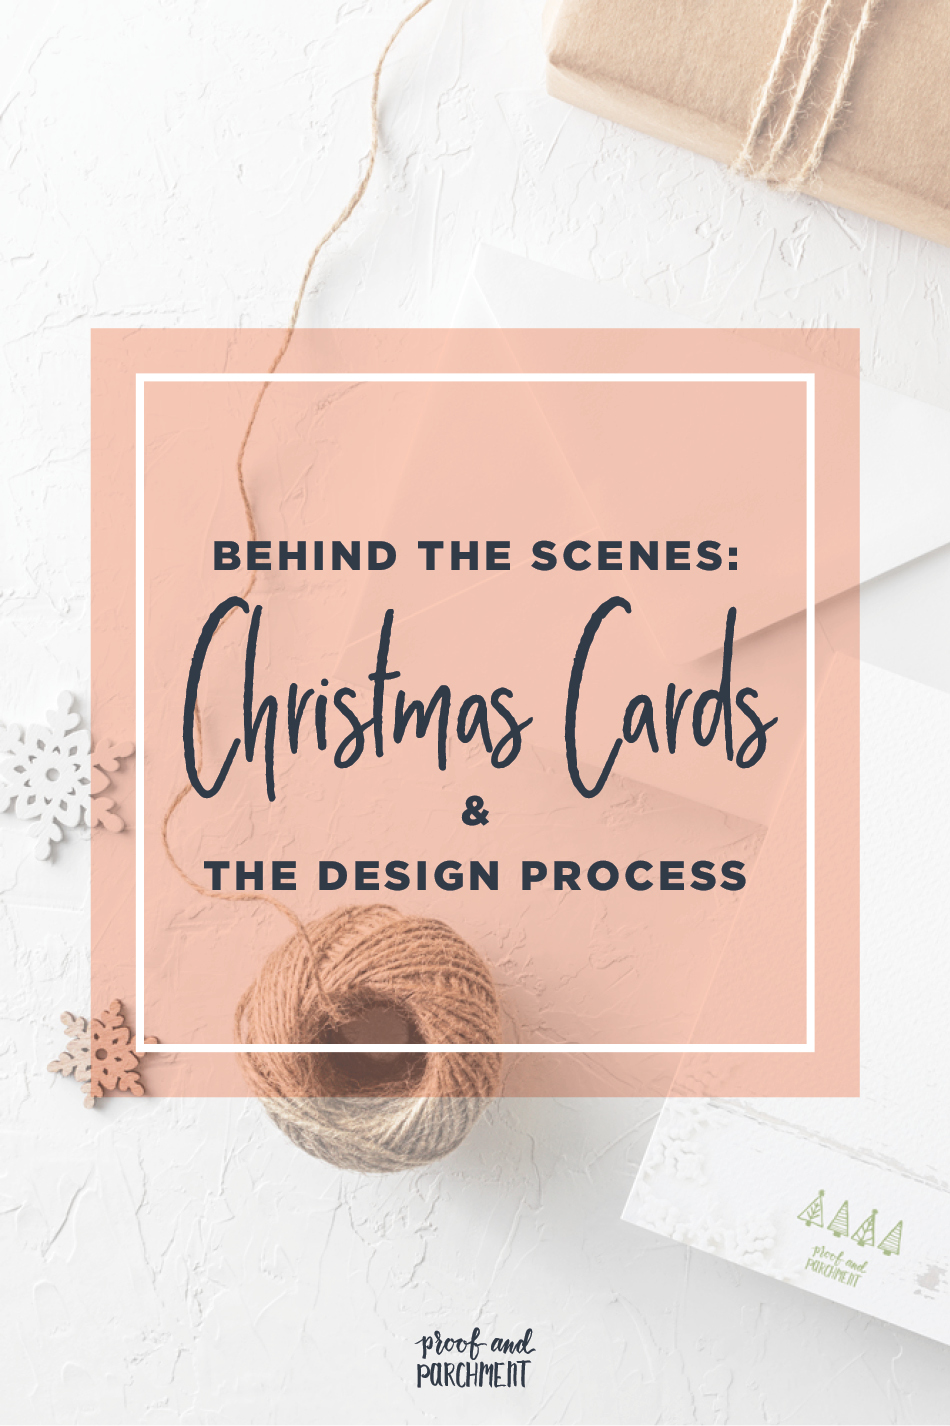 Behind the Designs of Christmas Cards